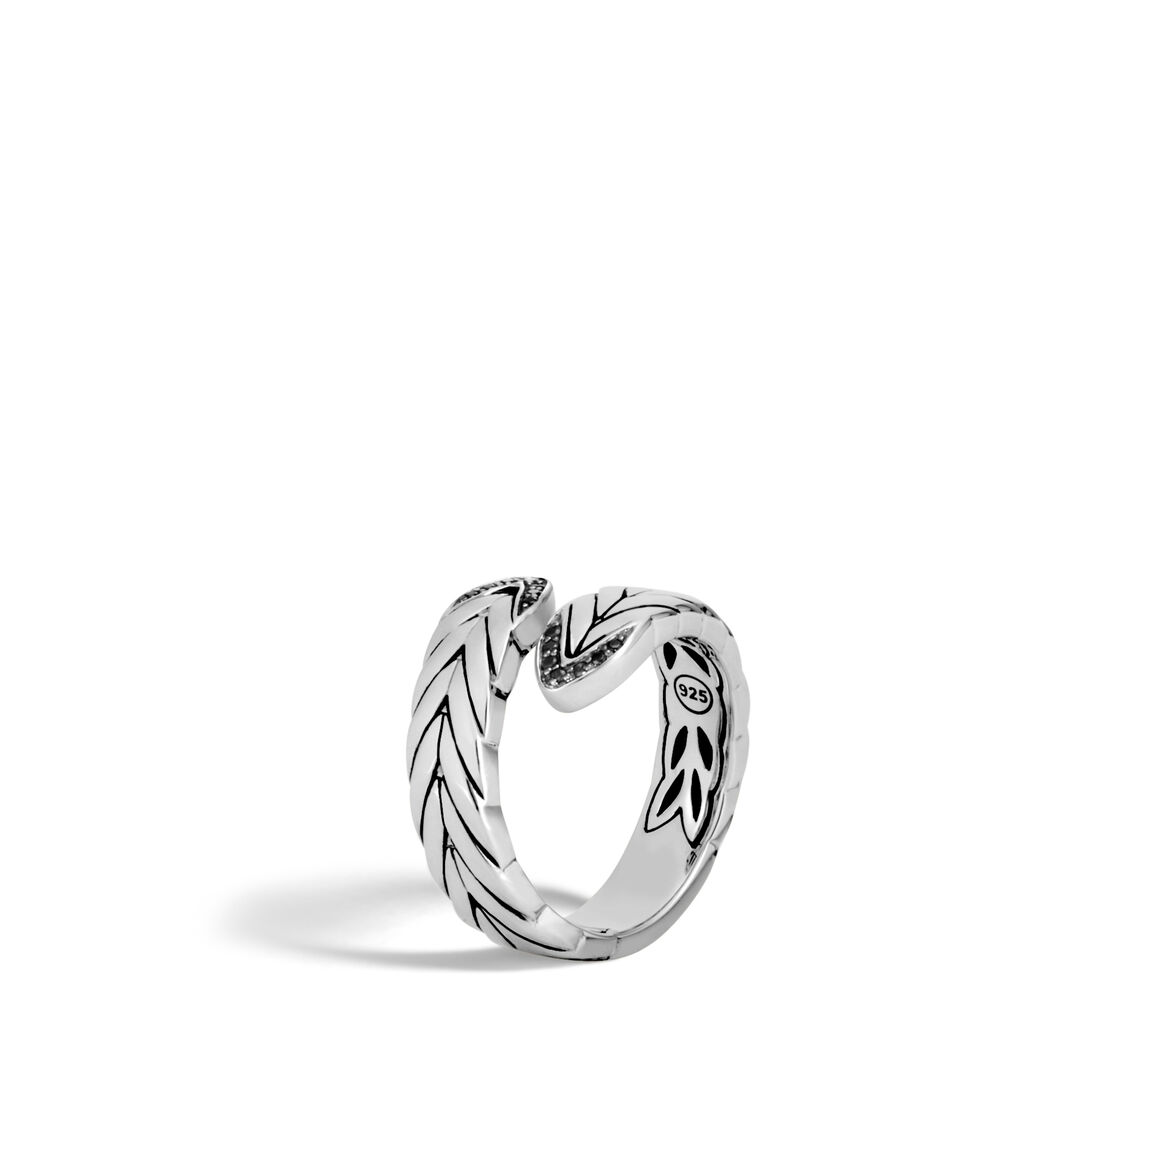 Modern Chain Bypass Ring in Silver with Gemstone